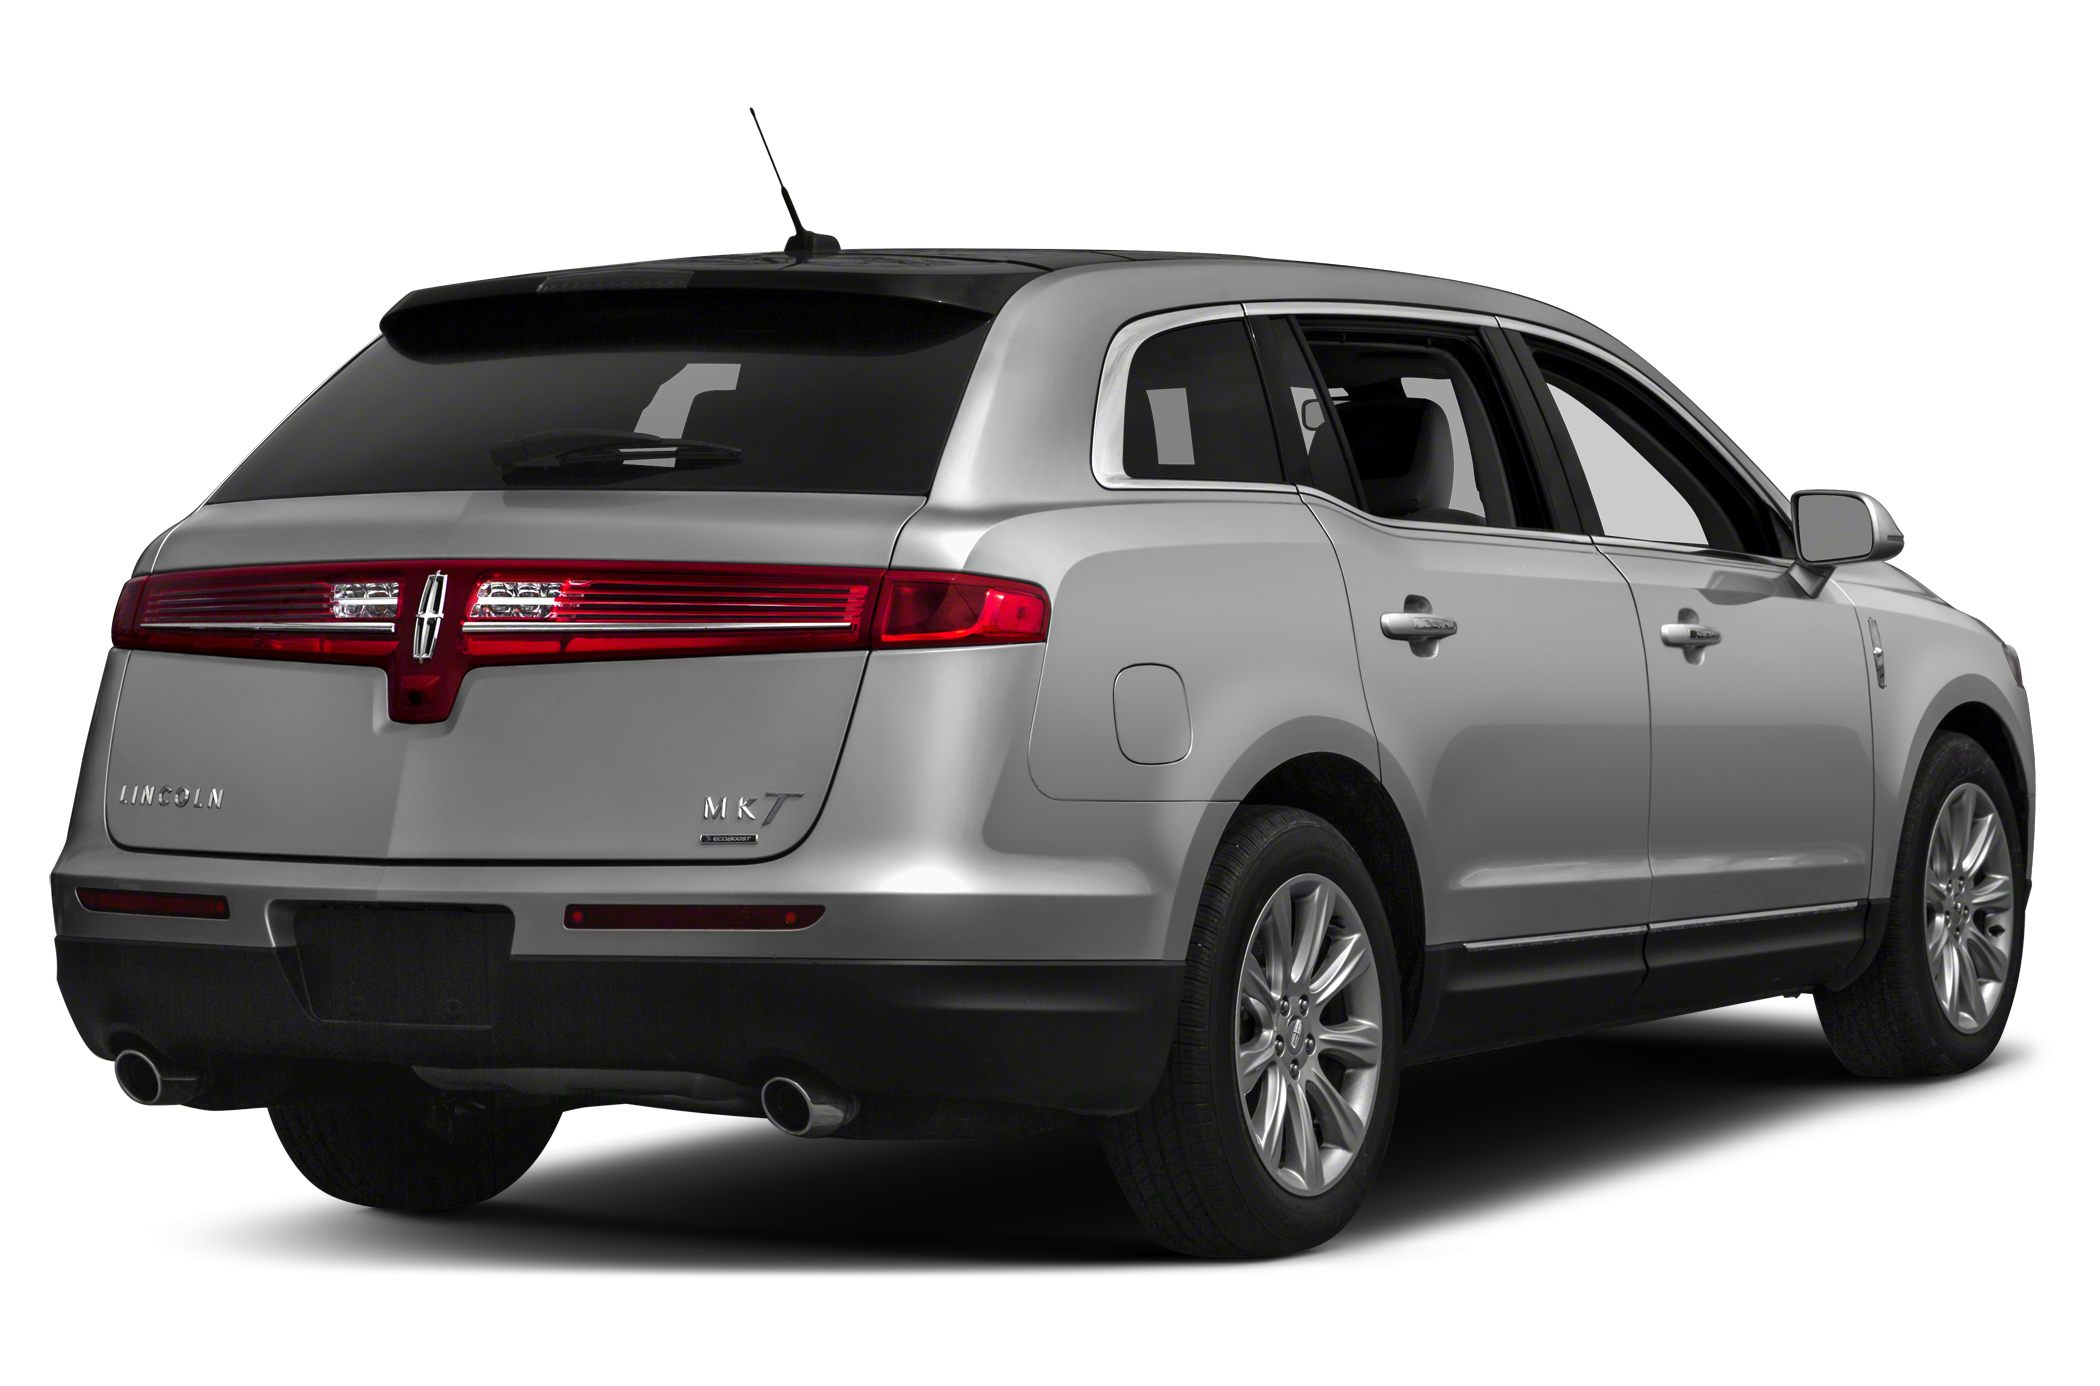 2014 Lincoln MKT Livery  ONE PRICE STOP NO HASSLE NO HAGGLE CAR BUYING EXPERIENCE Mile